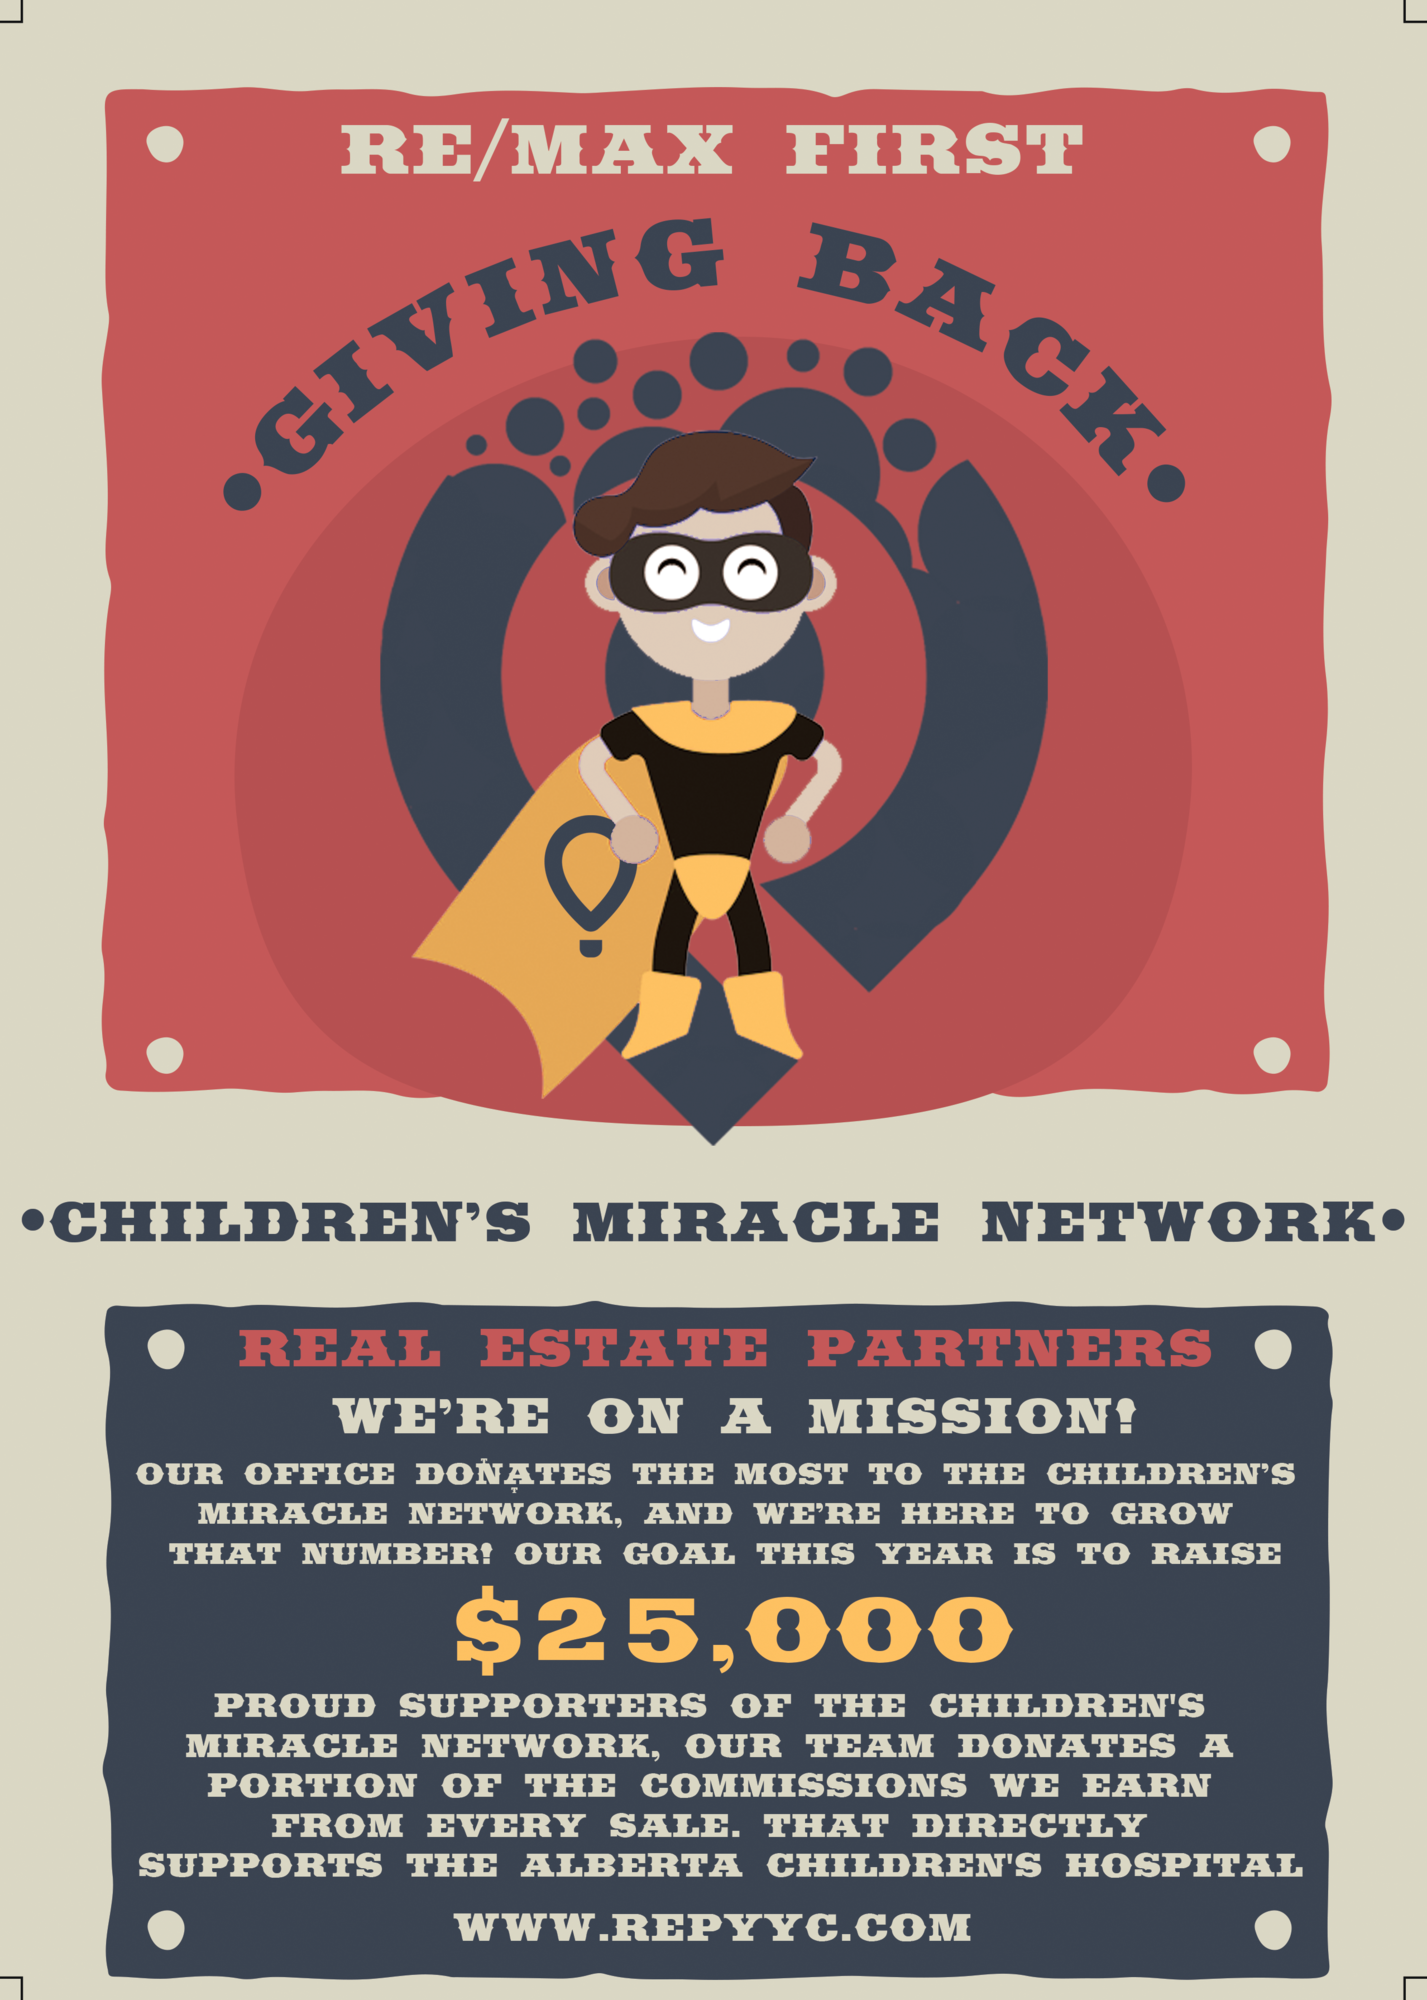 Re/Max First Childrens Miracle Network